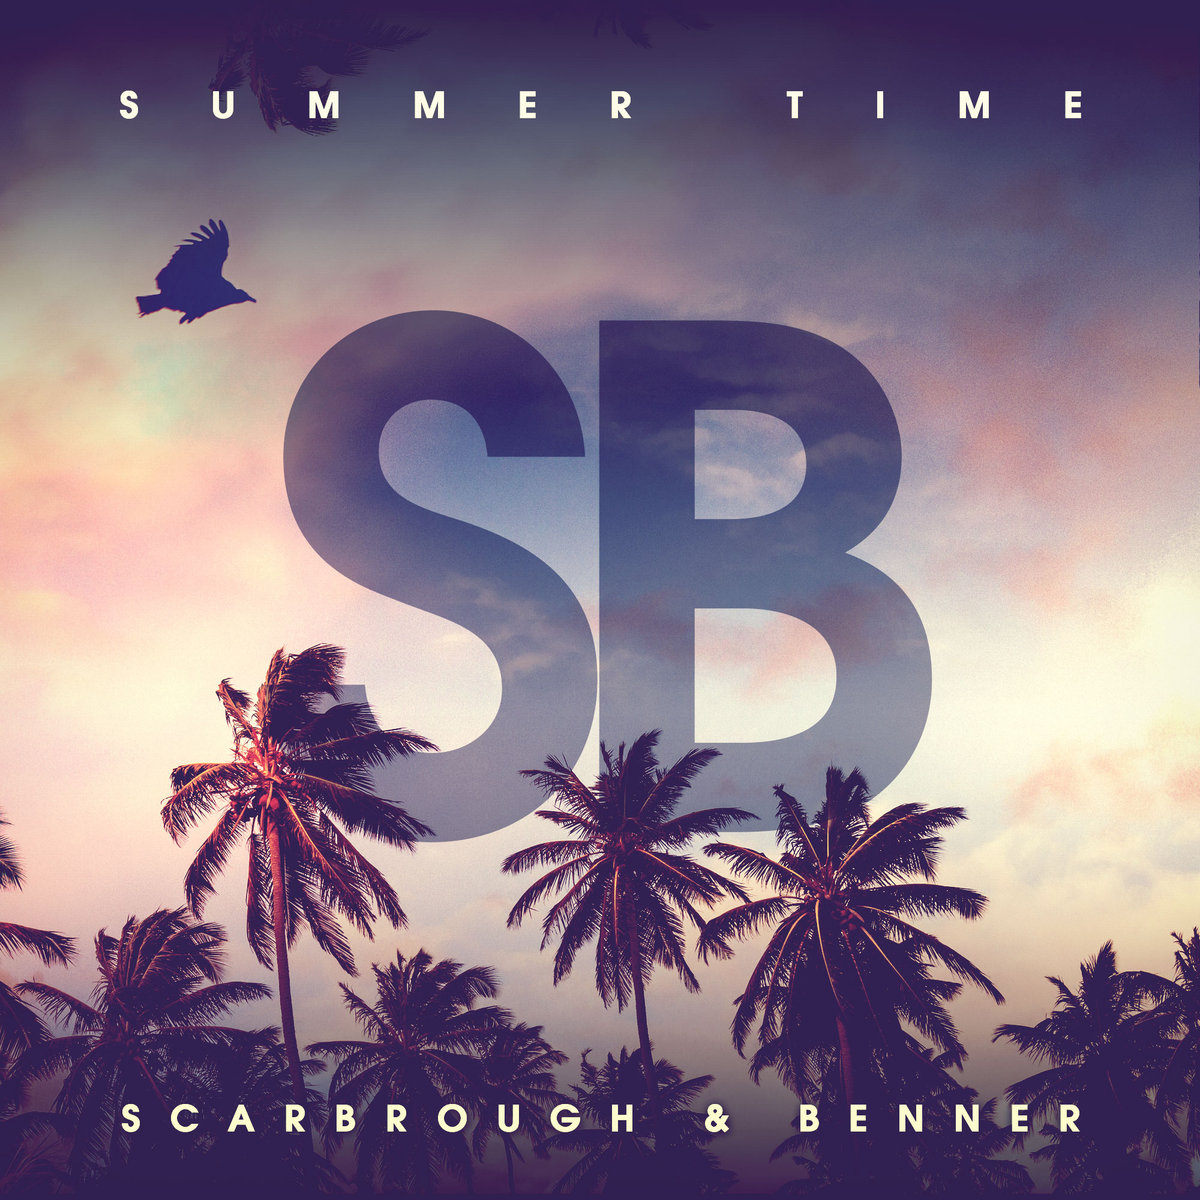 Scarbrough & Benner - Lidocaine @ 'Summertime' album (little dragon, thievery corporation)